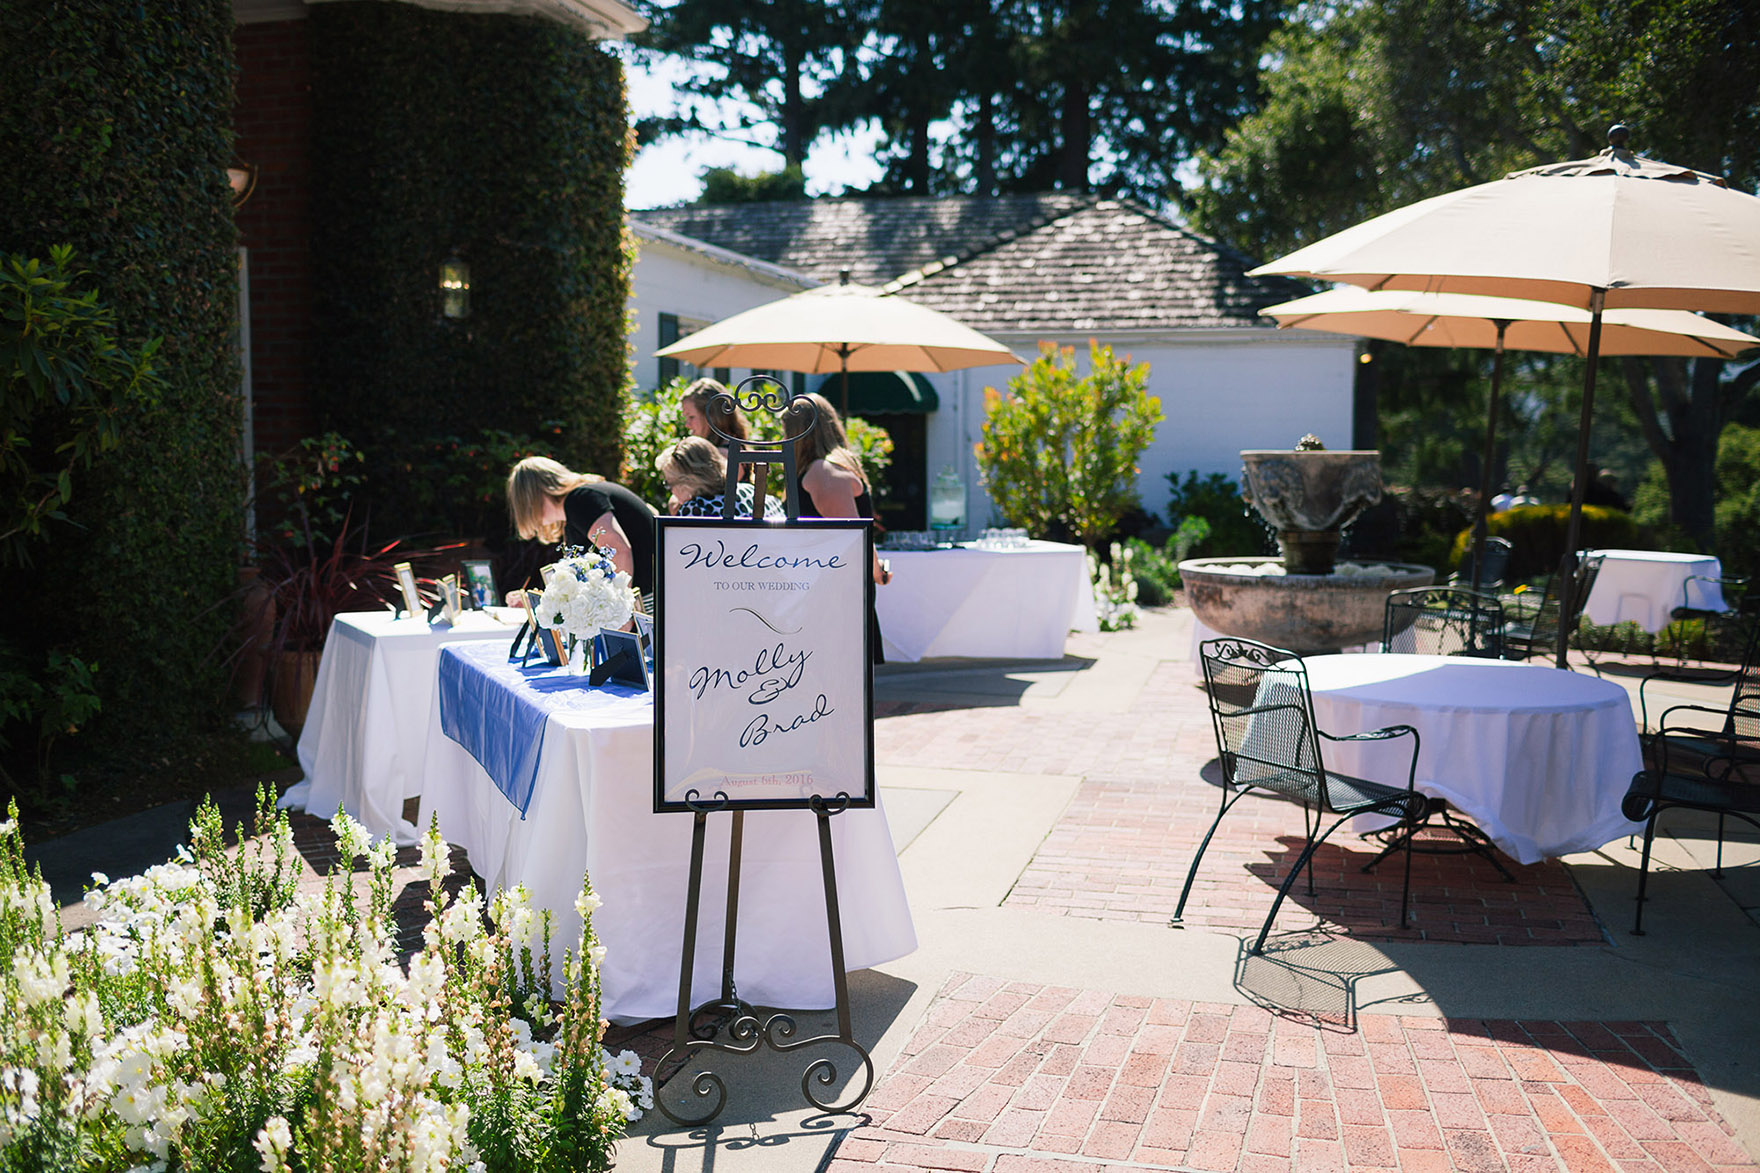 welcome sign greets visitors and family while guests sign the welcome album guestbook on the patio at the front of at the pasatiempo golf course at the bride and groom newlywed hollins house wedding the perfect santa cruz wedding venue